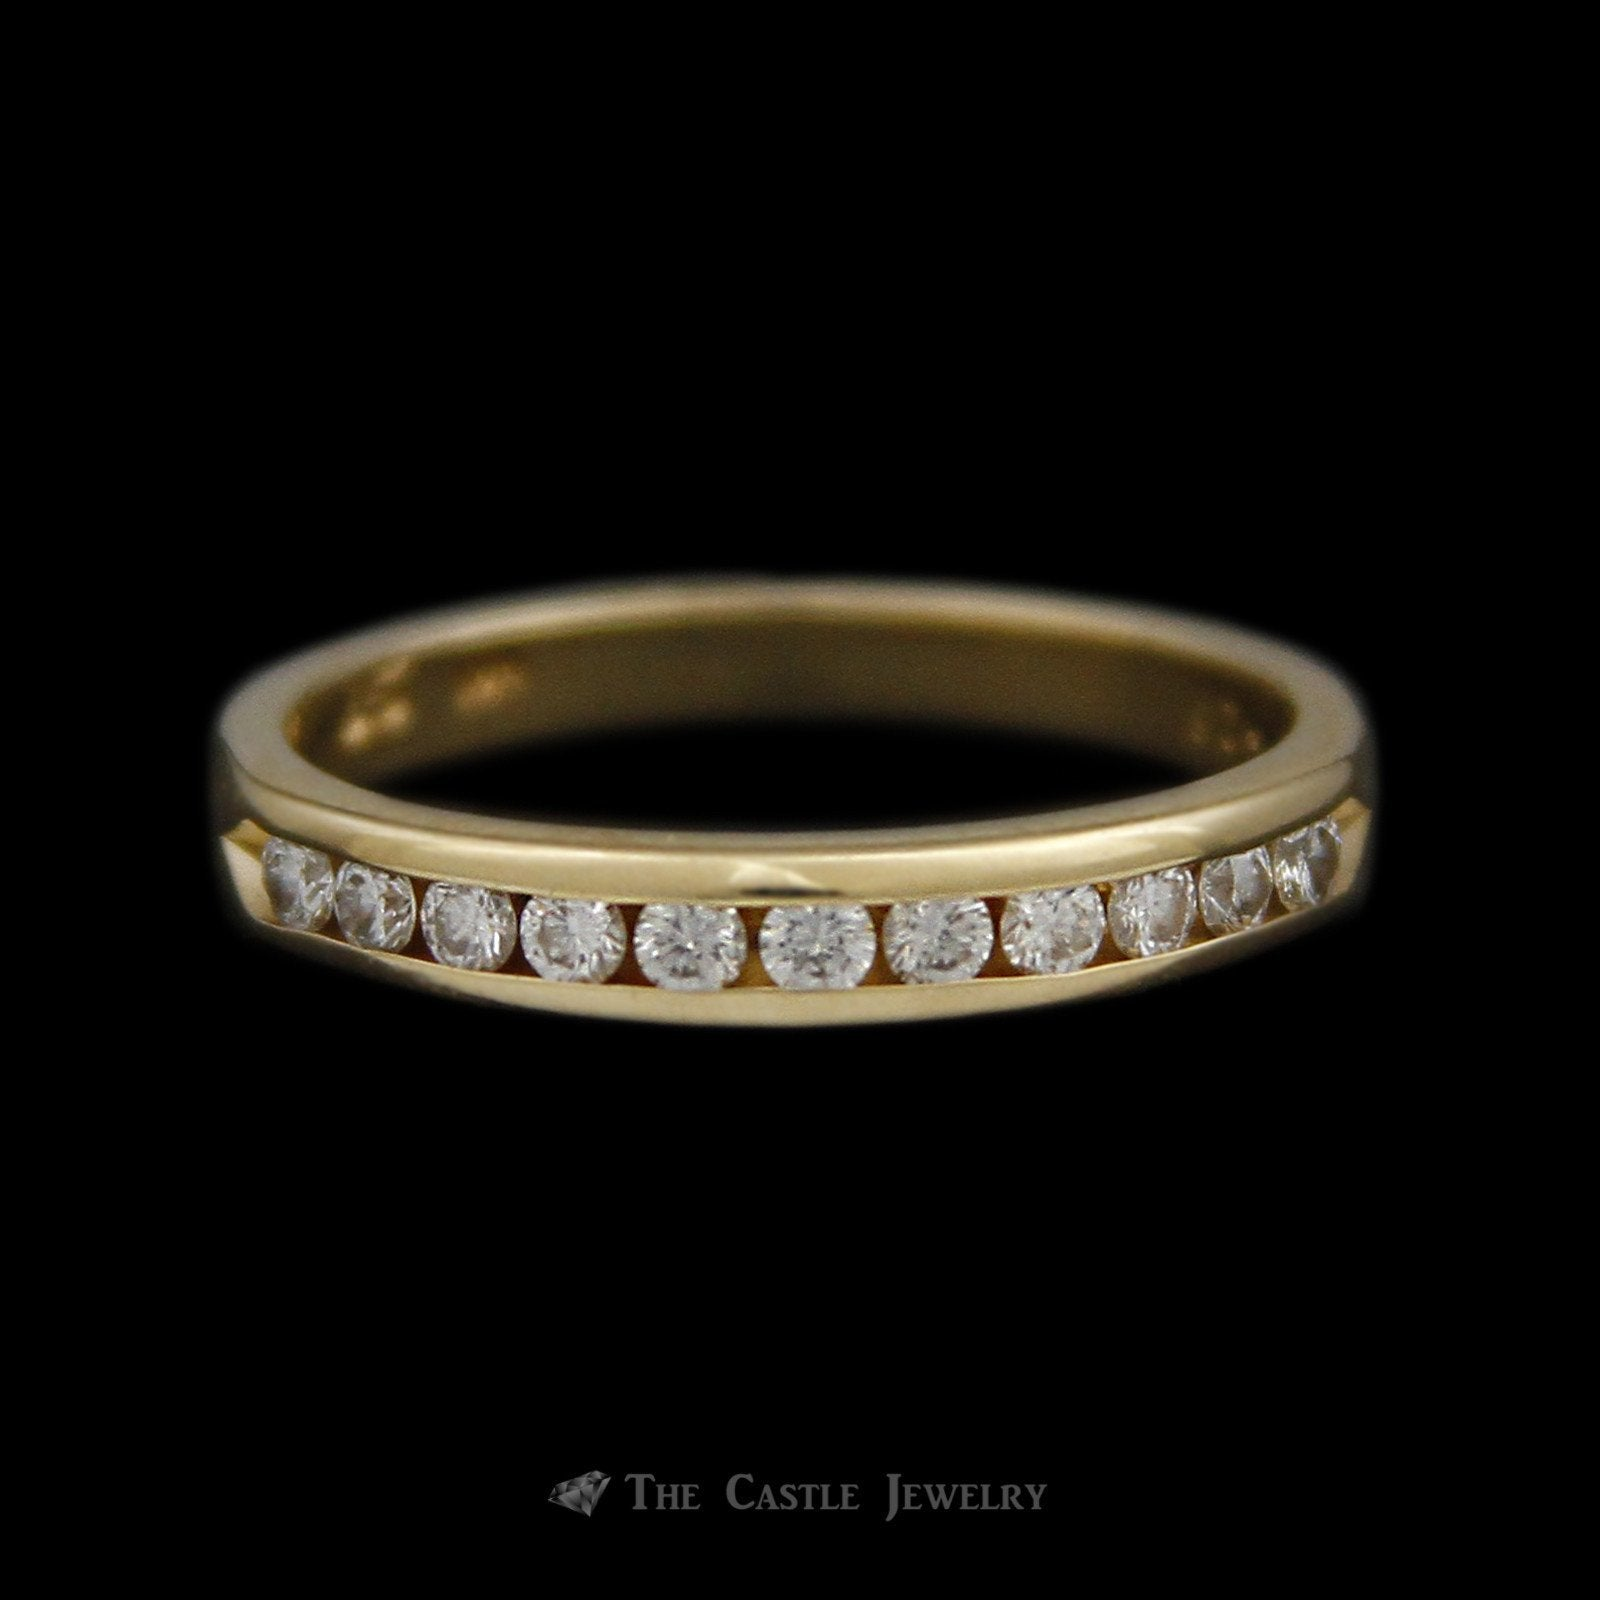 Channel Set Round Brilliant Cut .26cttw Diamond Wedding Band in 14K Yellow Gold